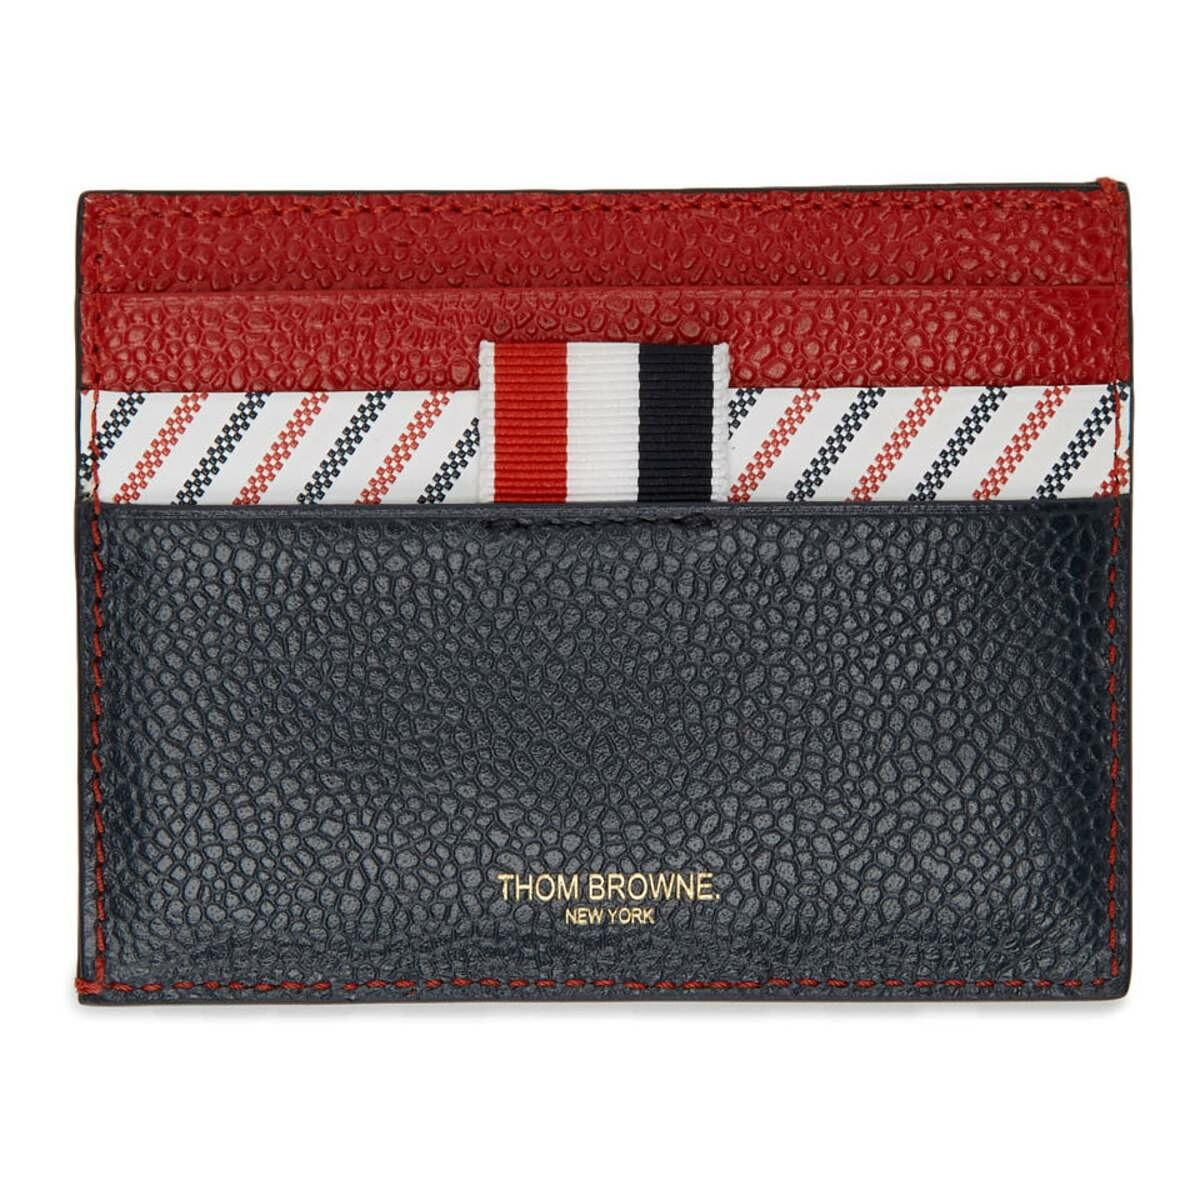 Thom Browne Tricolor Striped Card Holder Ssense USA WOMEN Women ACCESSORIES Womens WALLETS